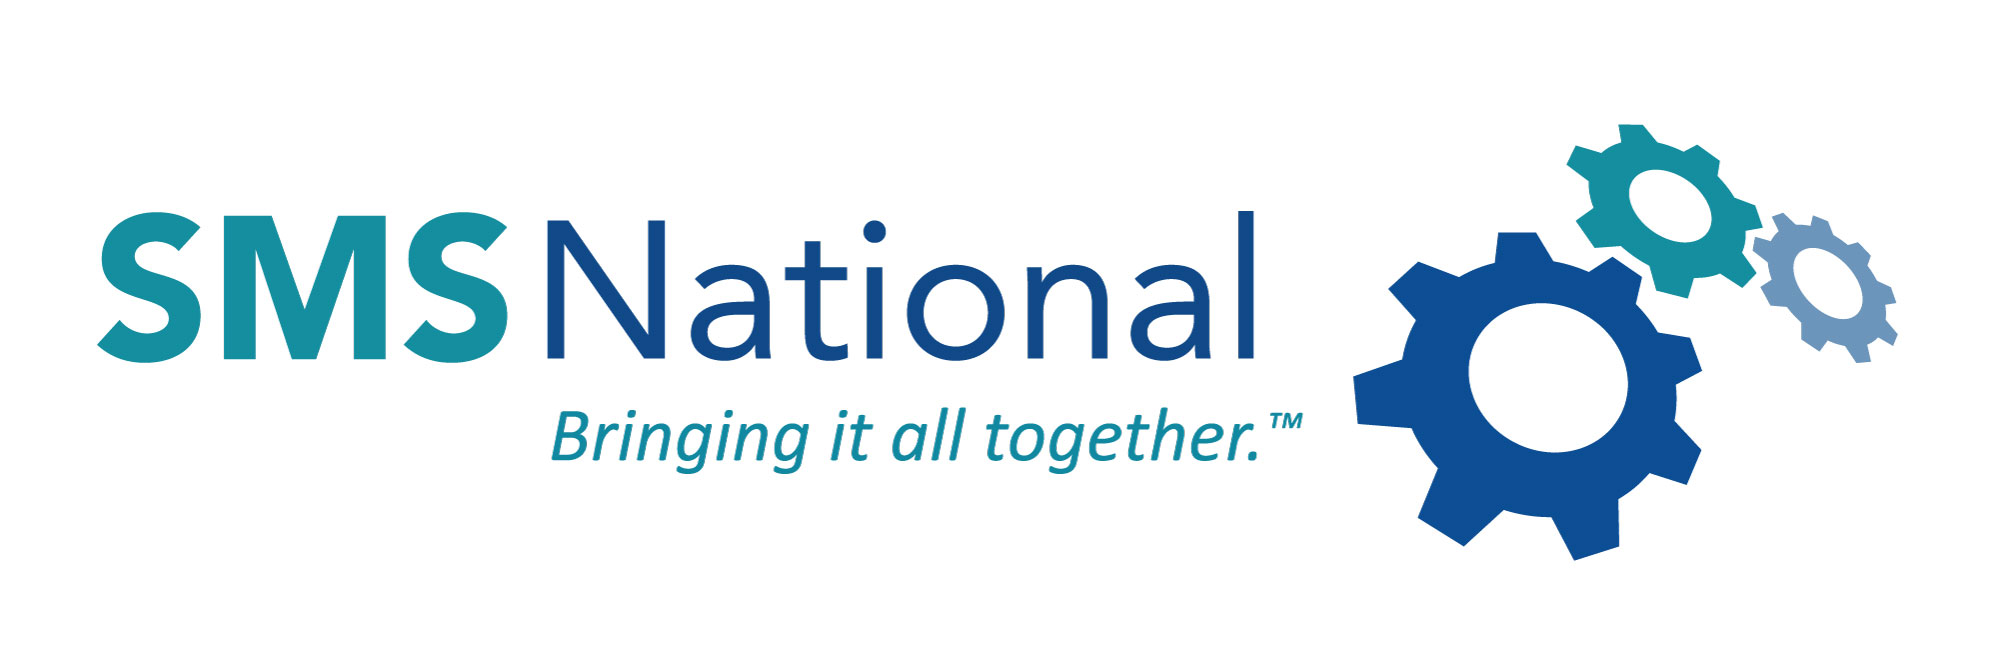 SMS National Logo